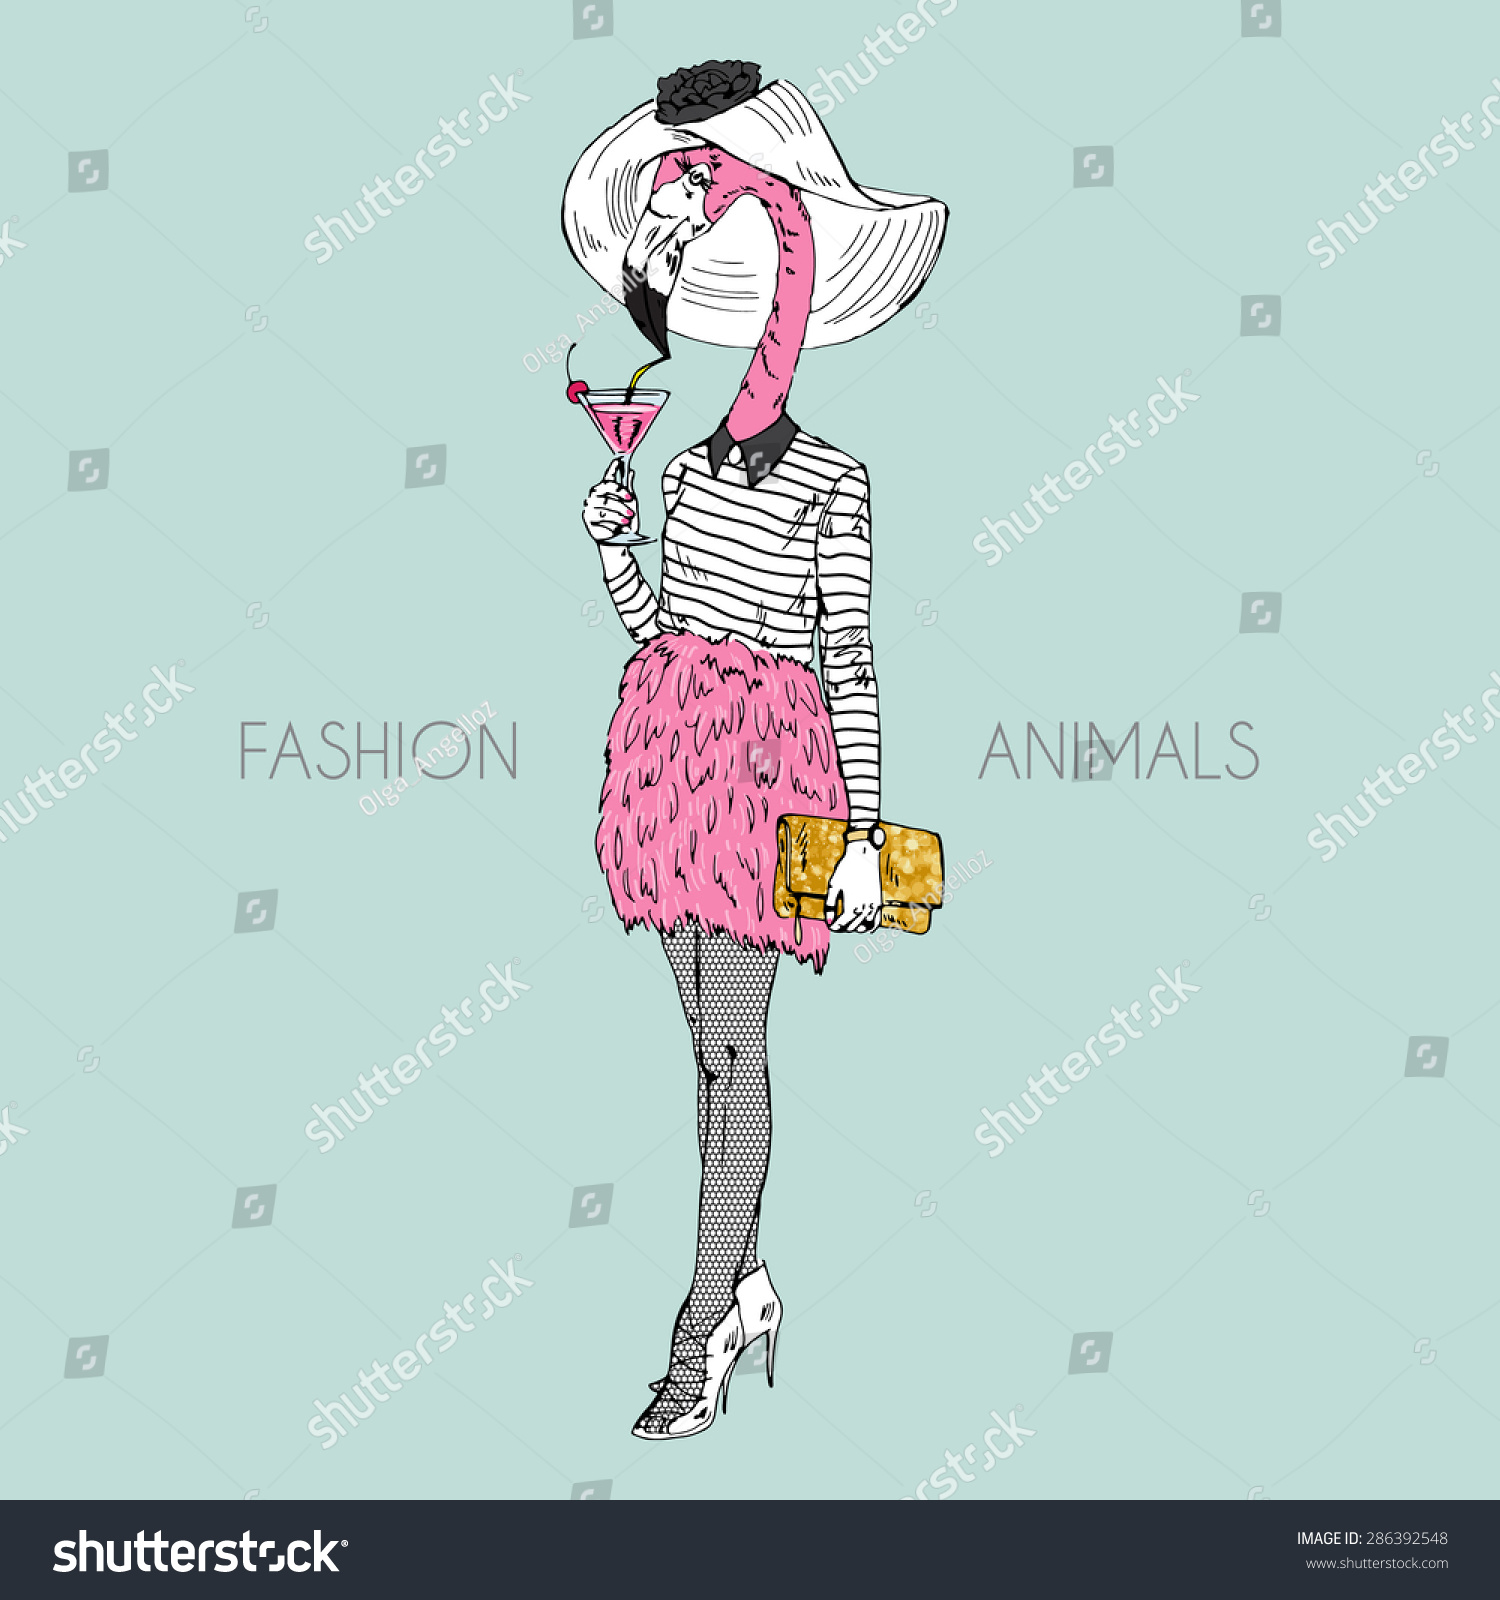 Royalty-free Fashion animal illustration eb88f4712f33